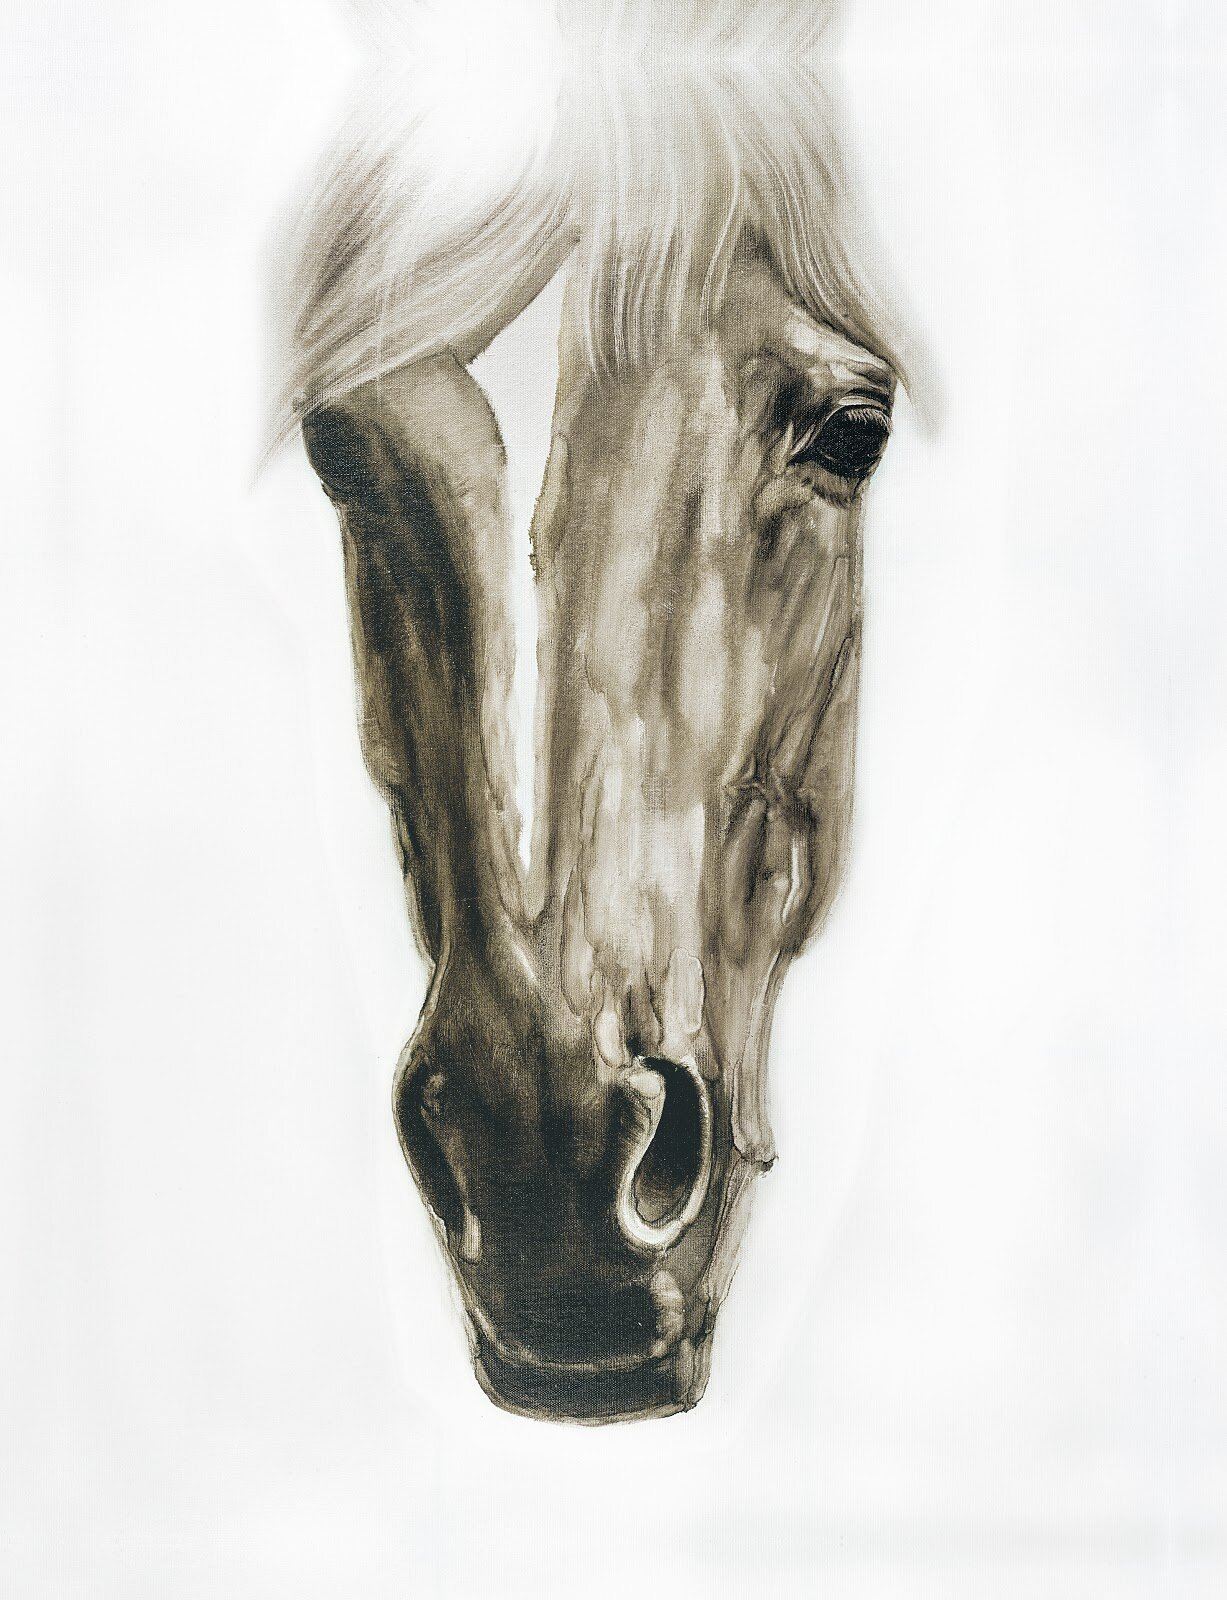 Union Rustic White Horse Ii Oil Painting Print On Wrapped Canvas